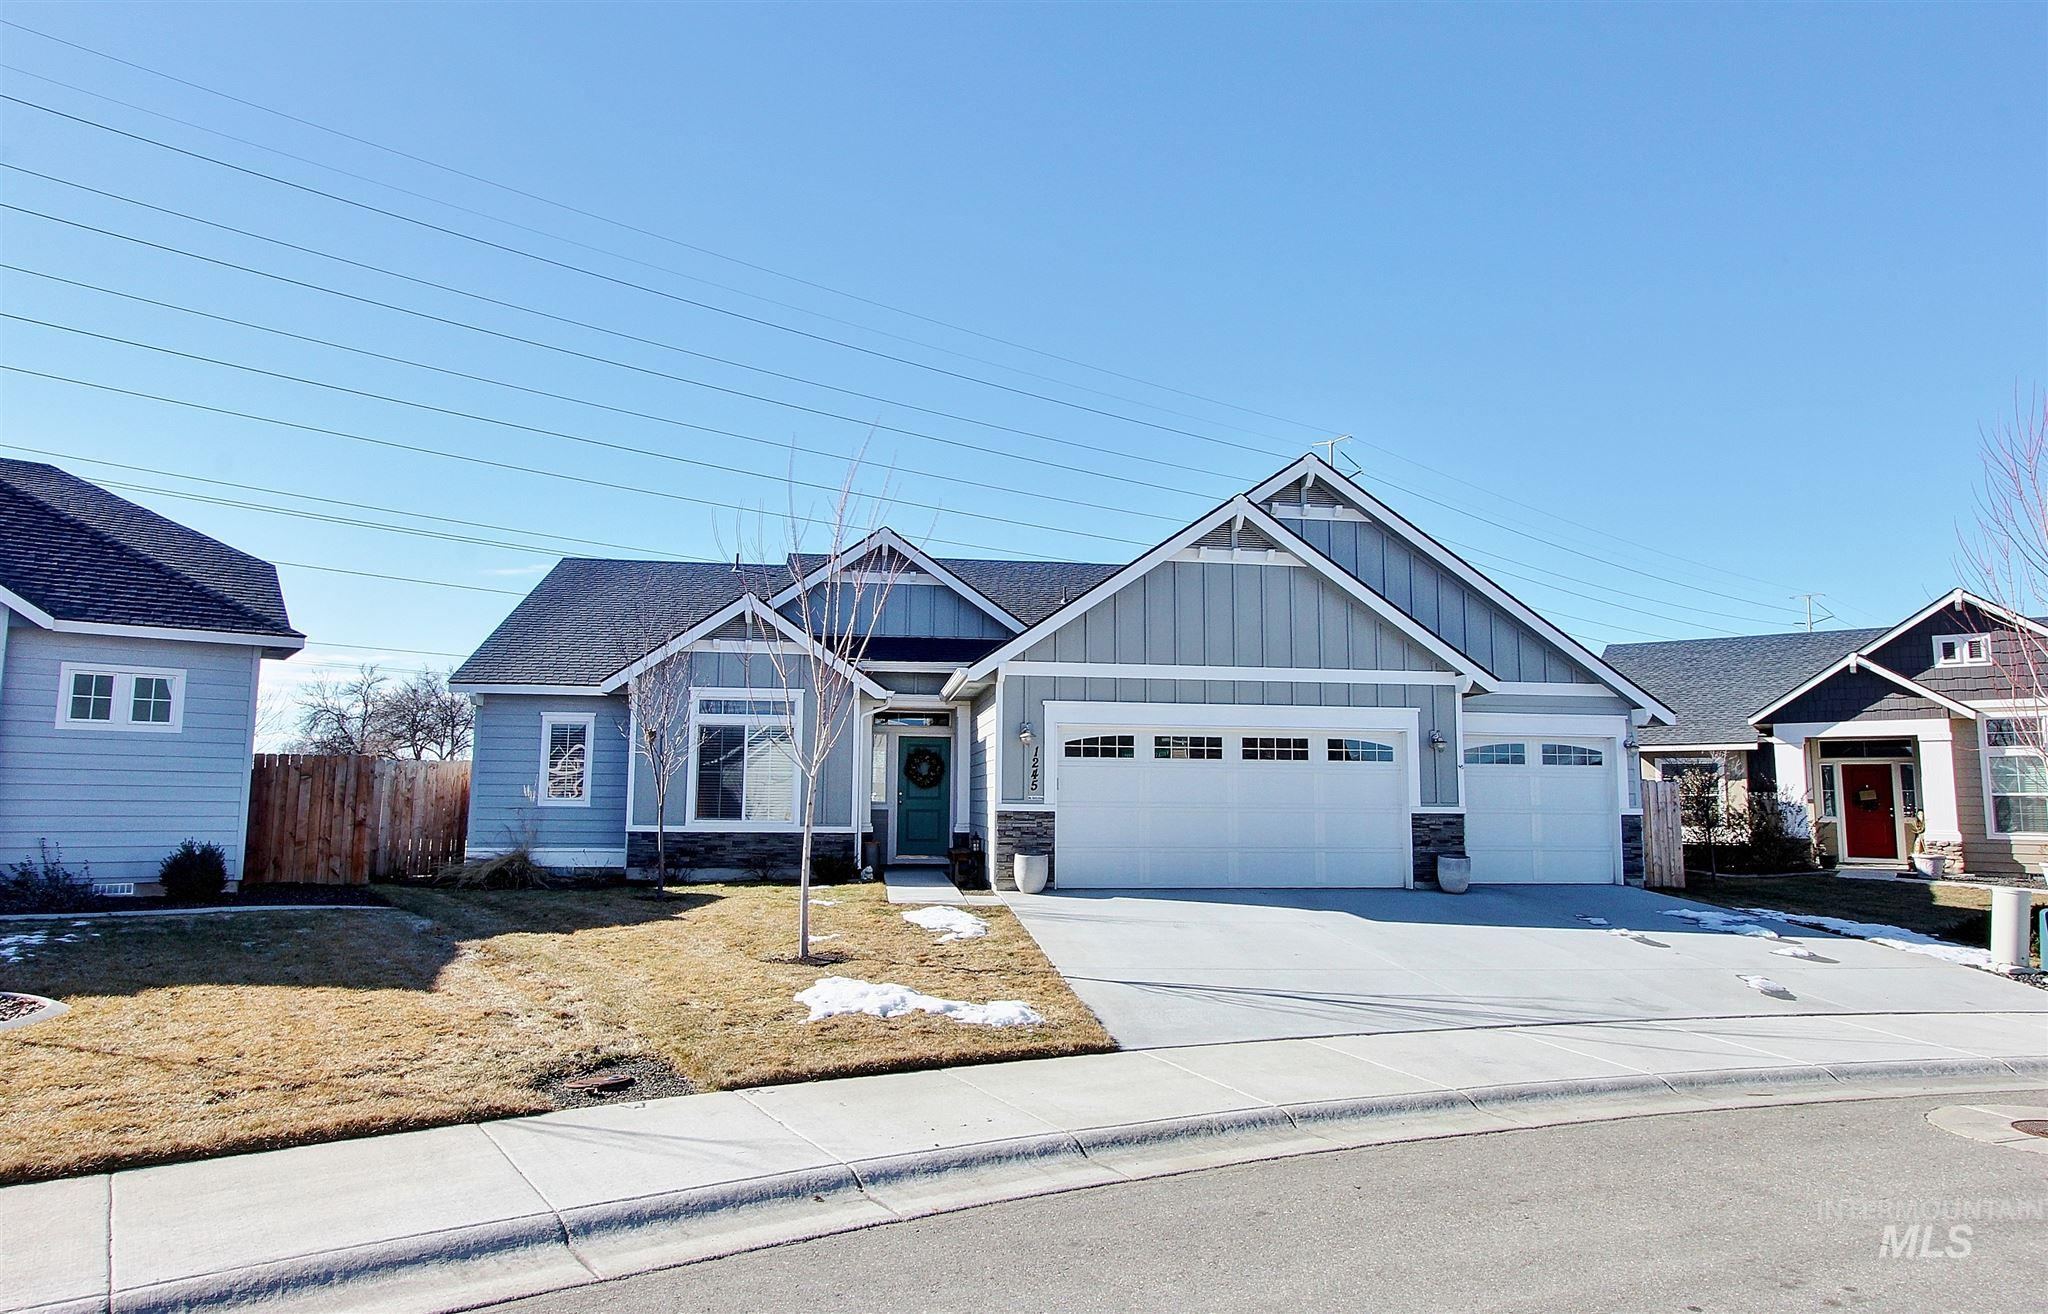 Beautiful SINGLE LEVEL 3 car garage home is adorned w/ abundant natural lighting that will chase away your winter blues & truly make your heart sing! Lovingly cared for, this newer home features an open concept split bedroom floor plan, office or 4th bedroom, gas fireplace, granite countertops, master suite w/ jetted soaker tub, separate shower, dual vanities & walk-in closet. Relax & enjoy the low maintenance spacious backyard or build a lush pool oasis or plant a spectacular garden. This home won't last!